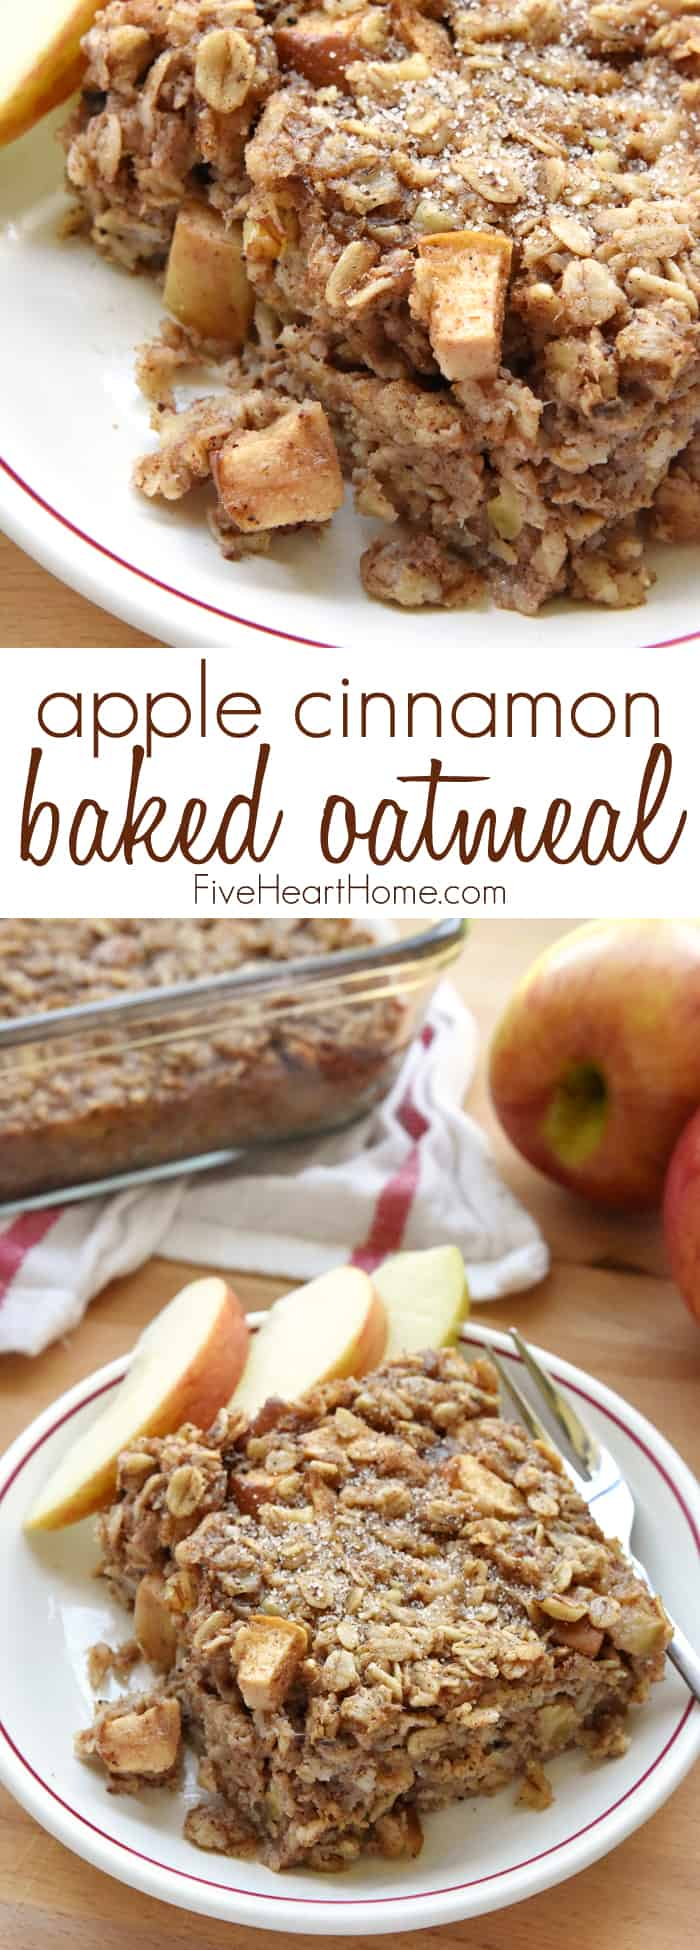 Apple Cinnamon Baked Oatmeal on a plate